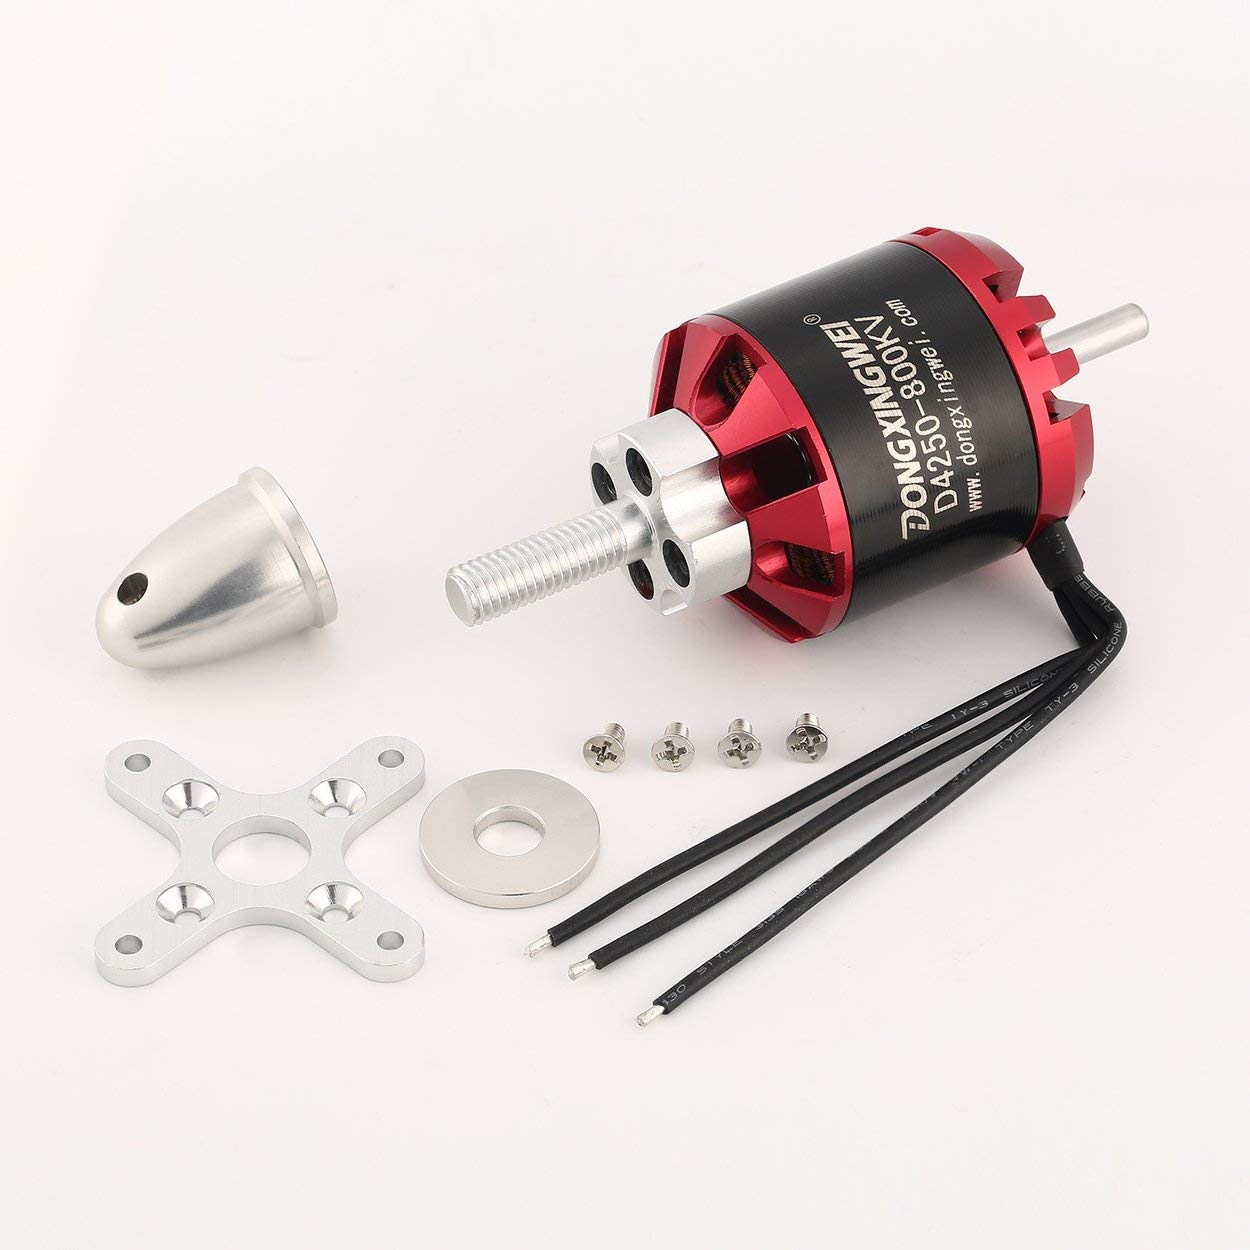 Lorenlli D4250 800KV 3-7S Outrunner Brushless Motor per RC FPV Fixed Wing Drone Airplane Aircraft Quadcopter Multicopter